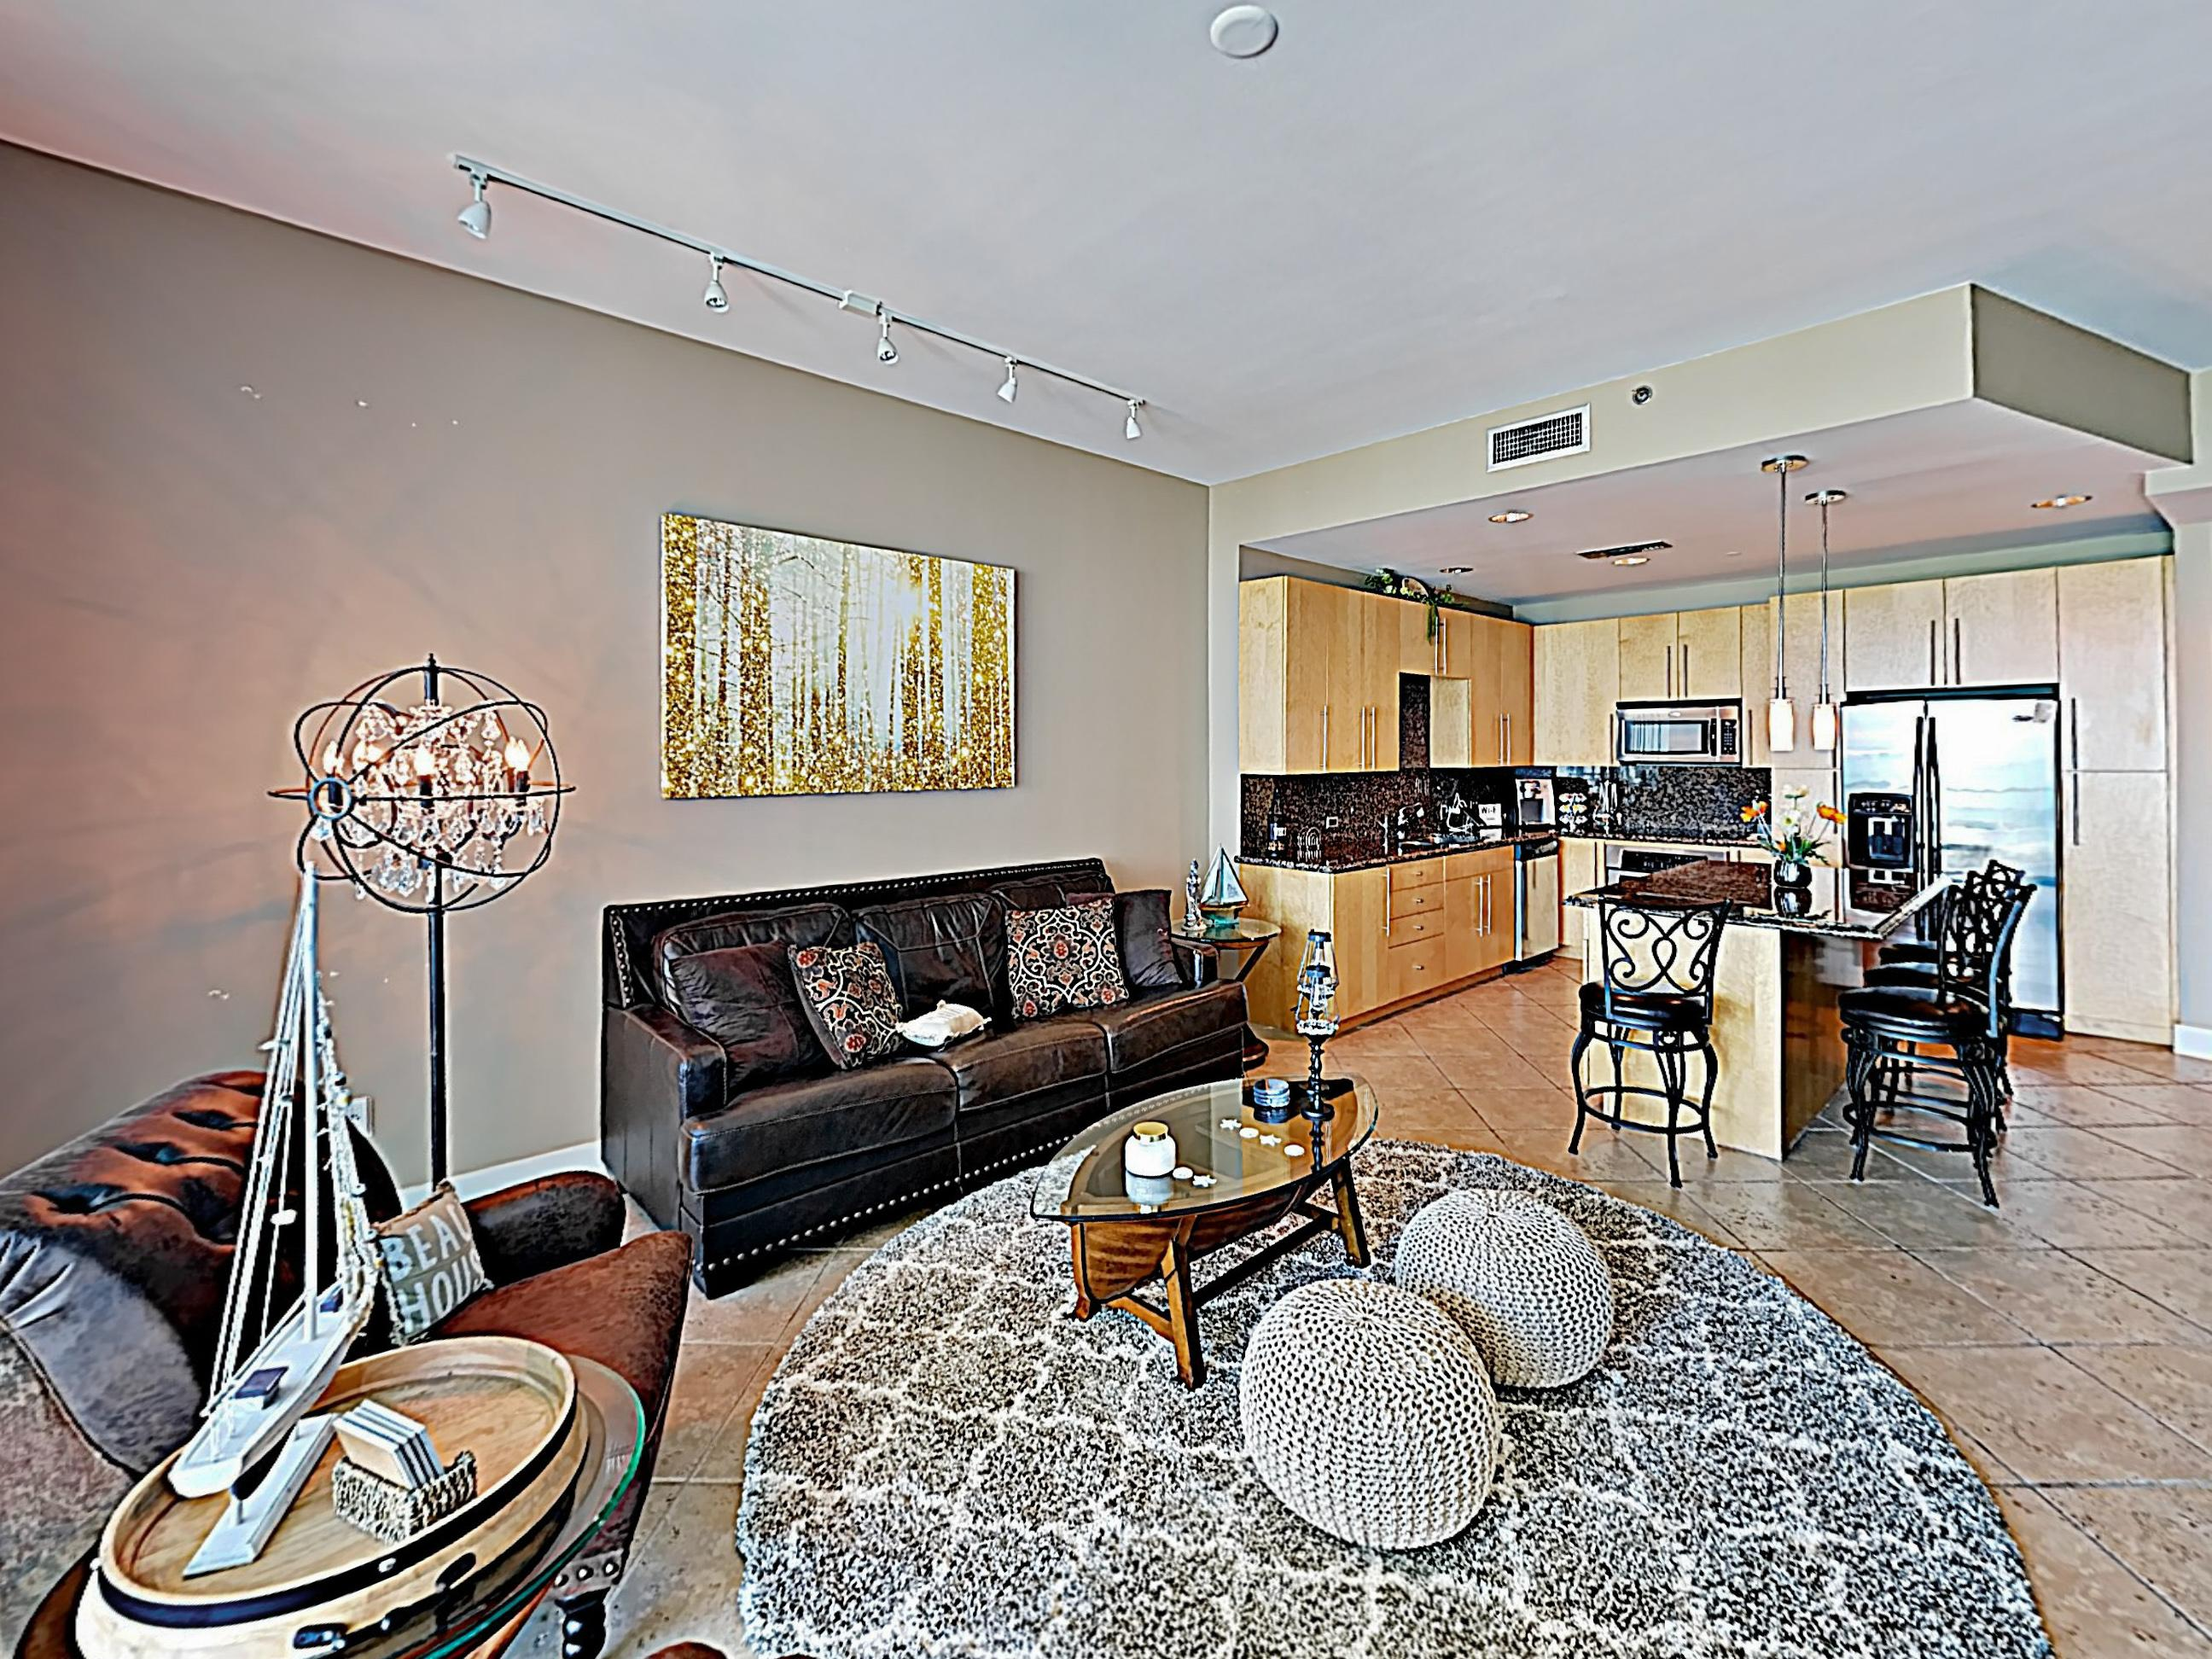 10' foot ceilings soar in the sophisticated living area, complete with high-end furnishings.